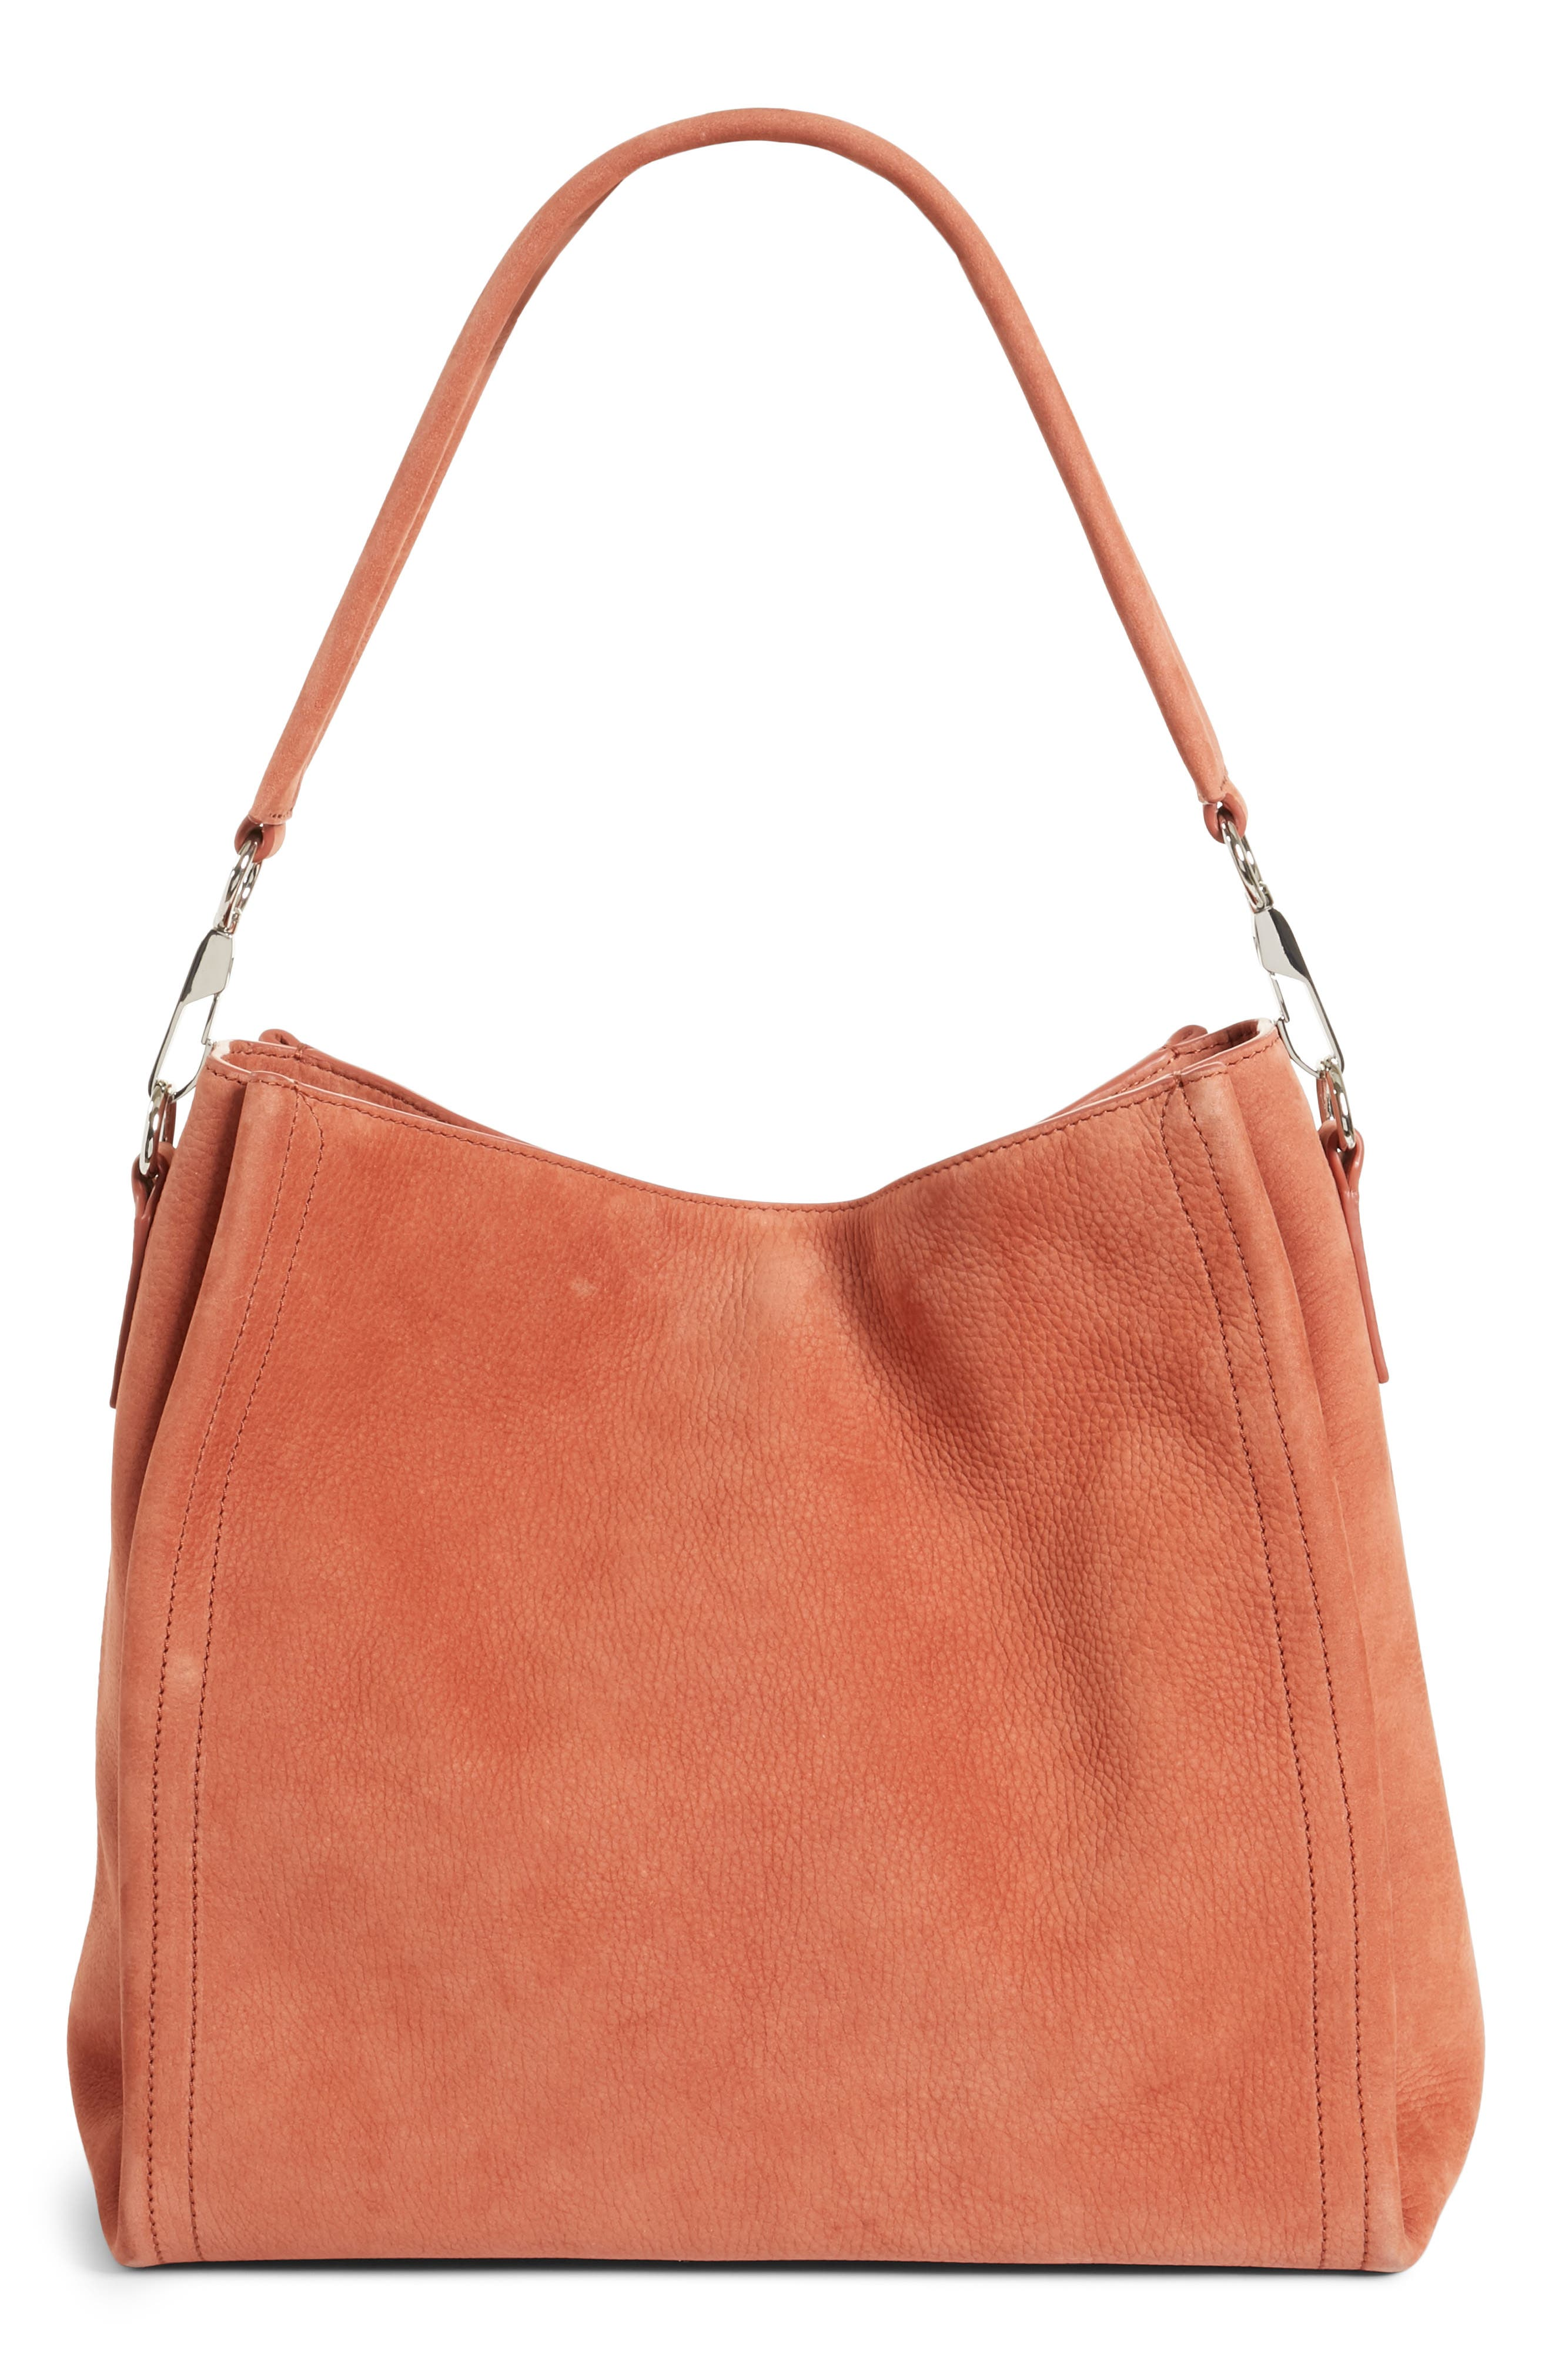 Alternate Image 1 Selected - Alexander Wang Darcy Pebbled Leather Hobo